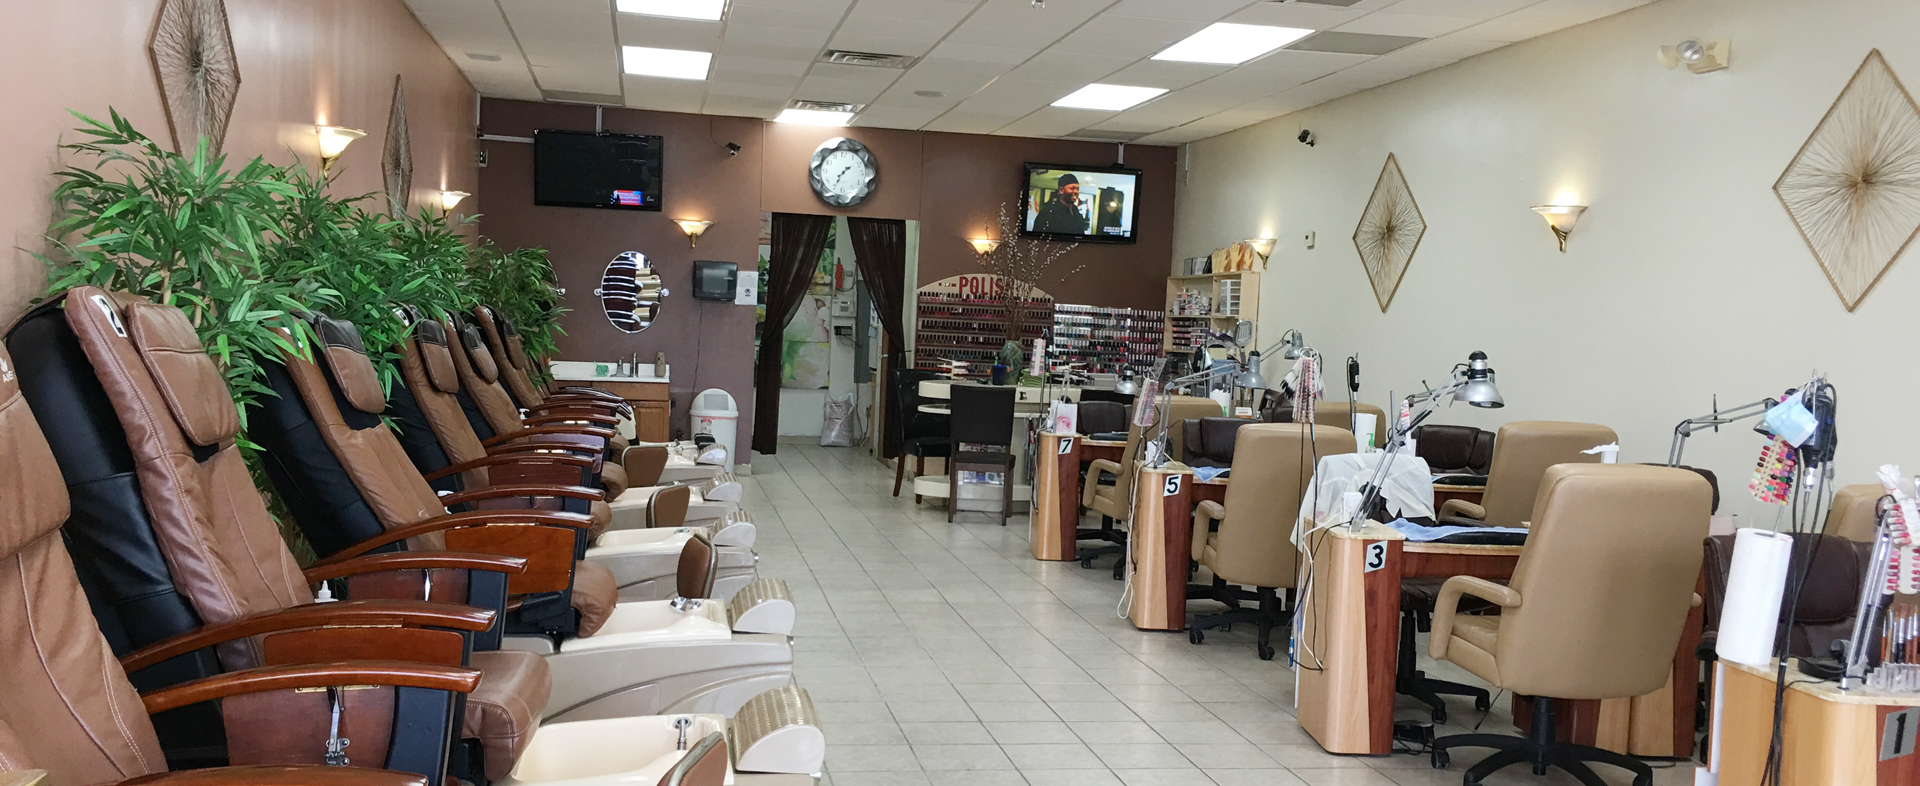 Maple Nails - Nail salon in Omaha, Nebraska 68116